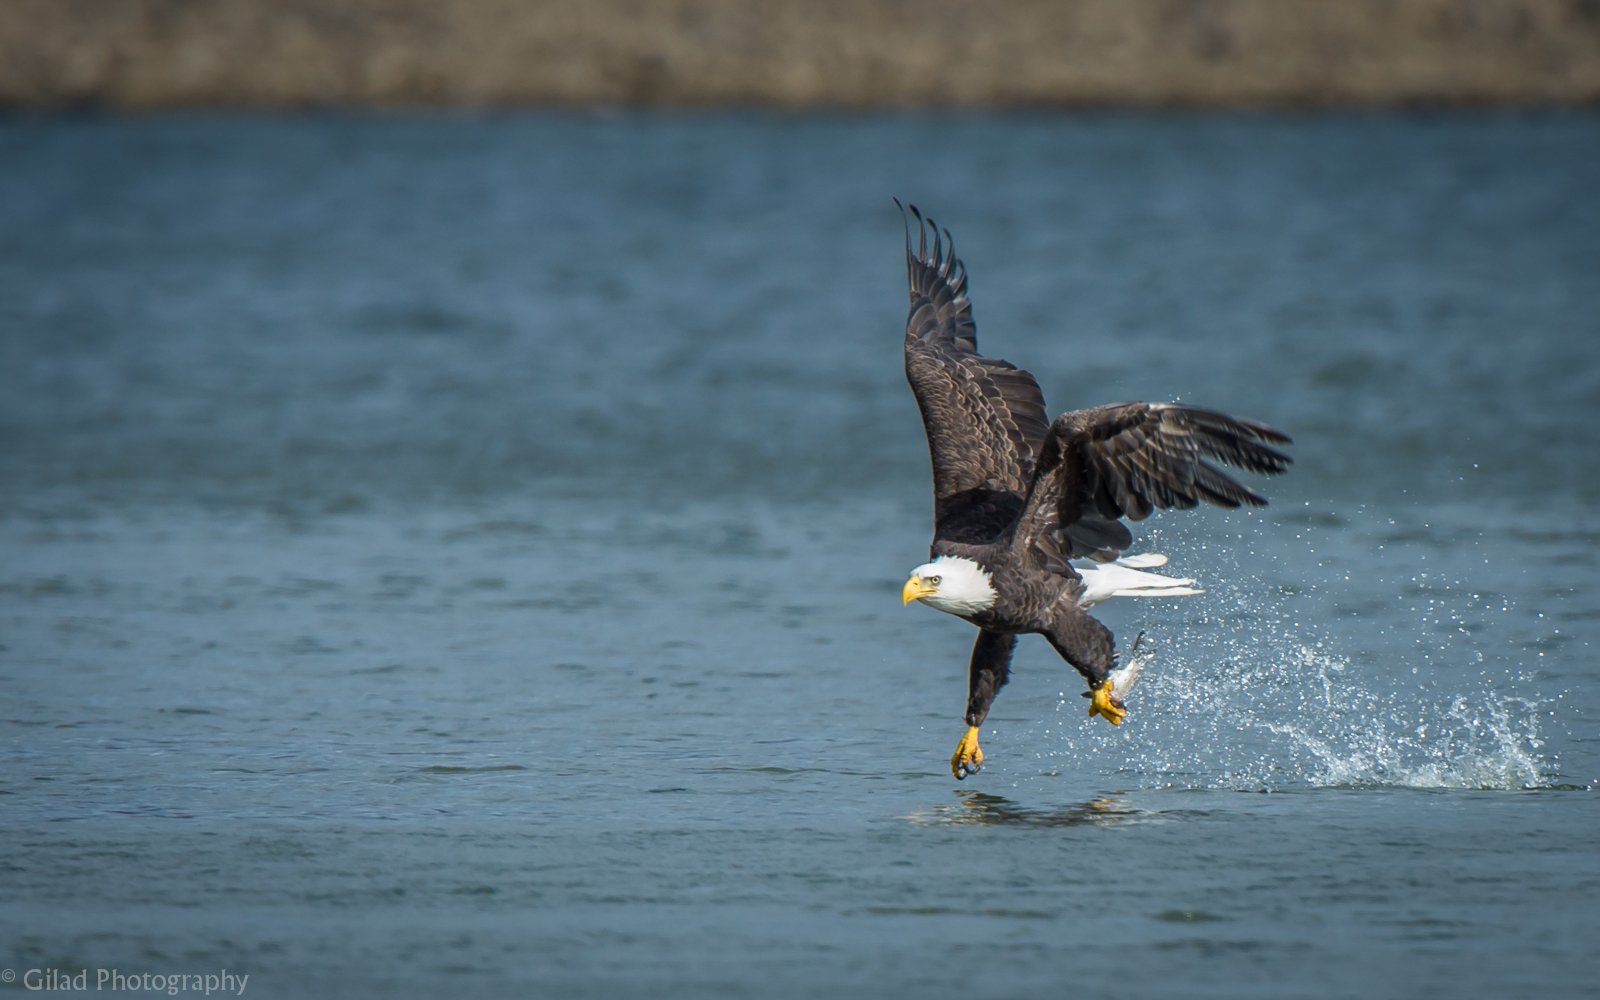 Bald Eagle fishing at Conowingo Dam